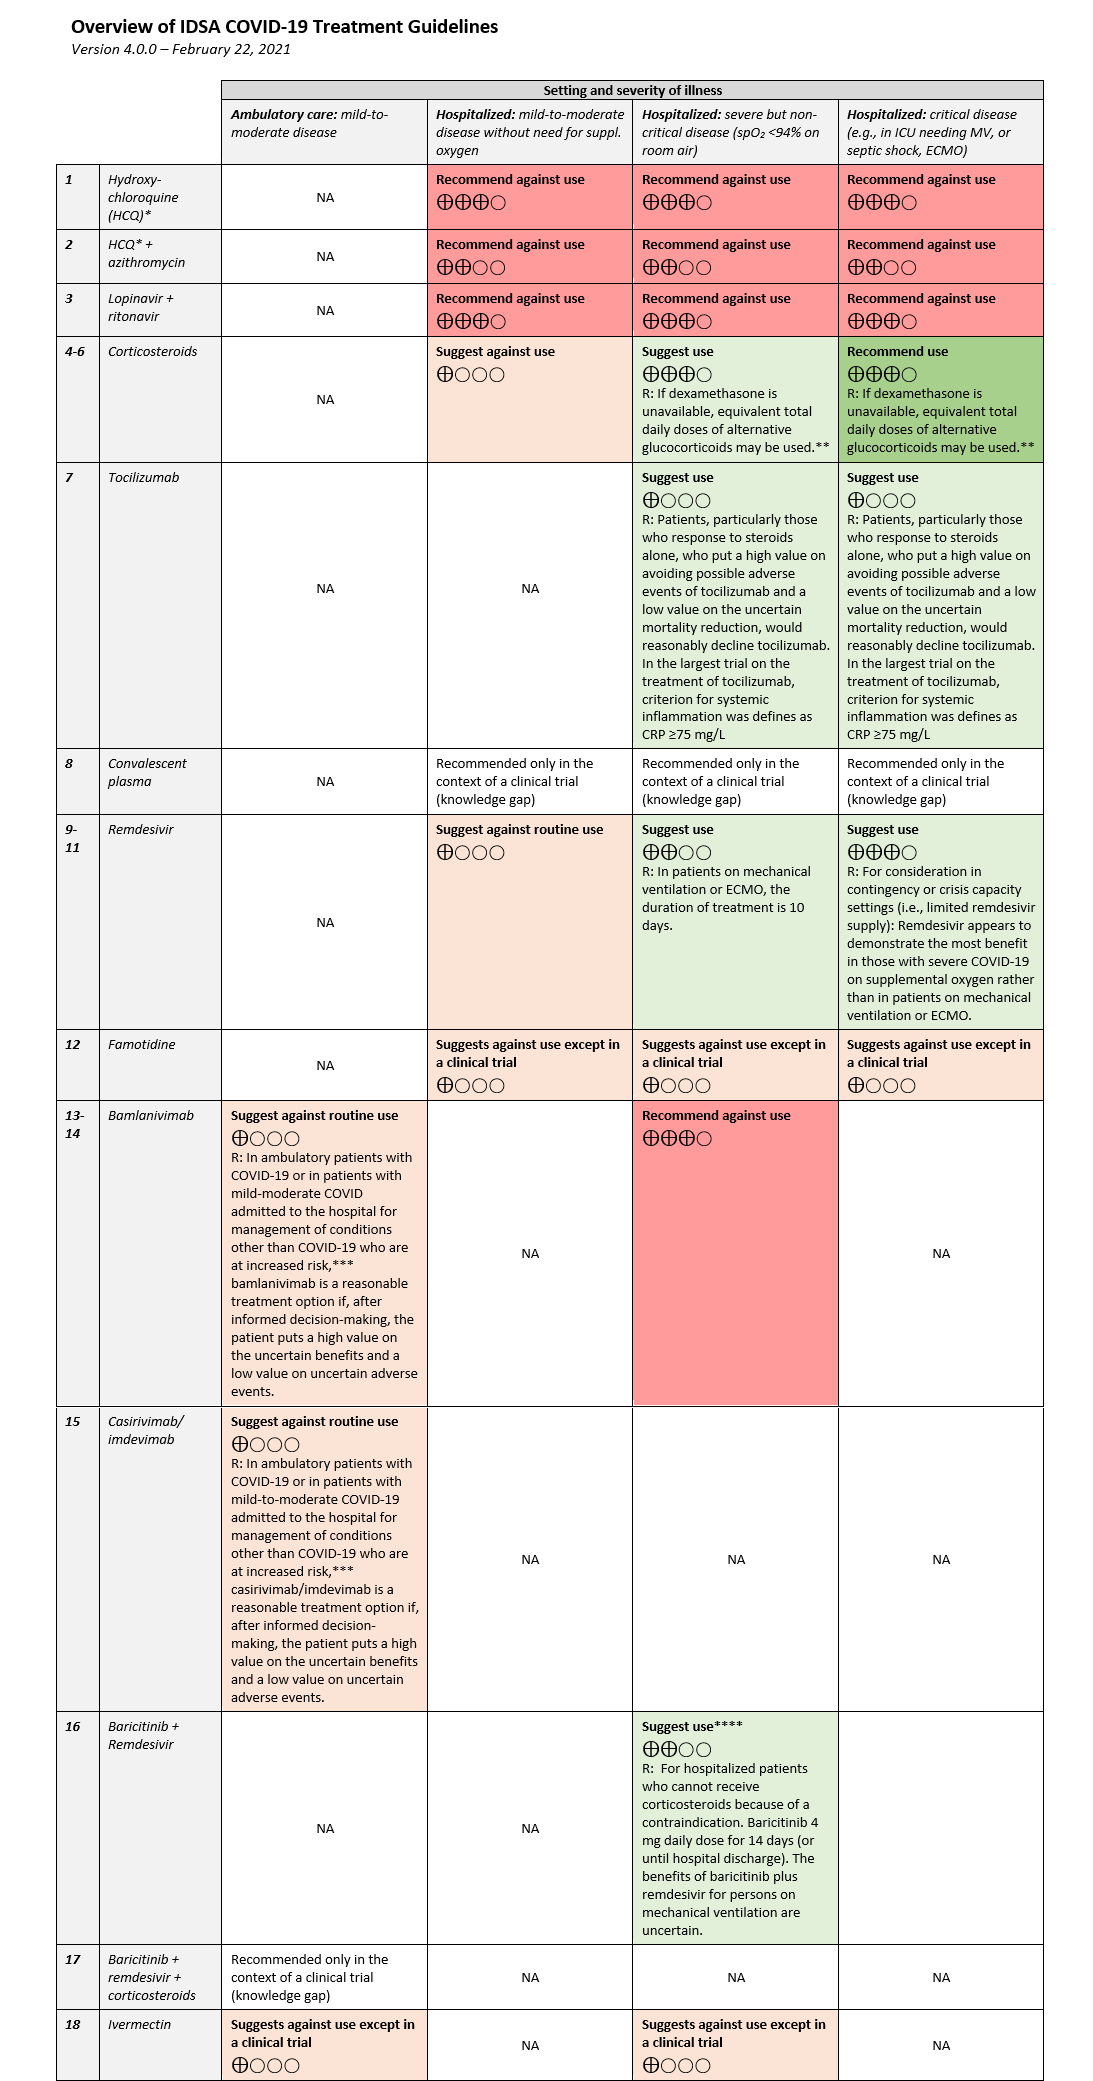 Overview of COVID-19 Interventions v4.0.0.png